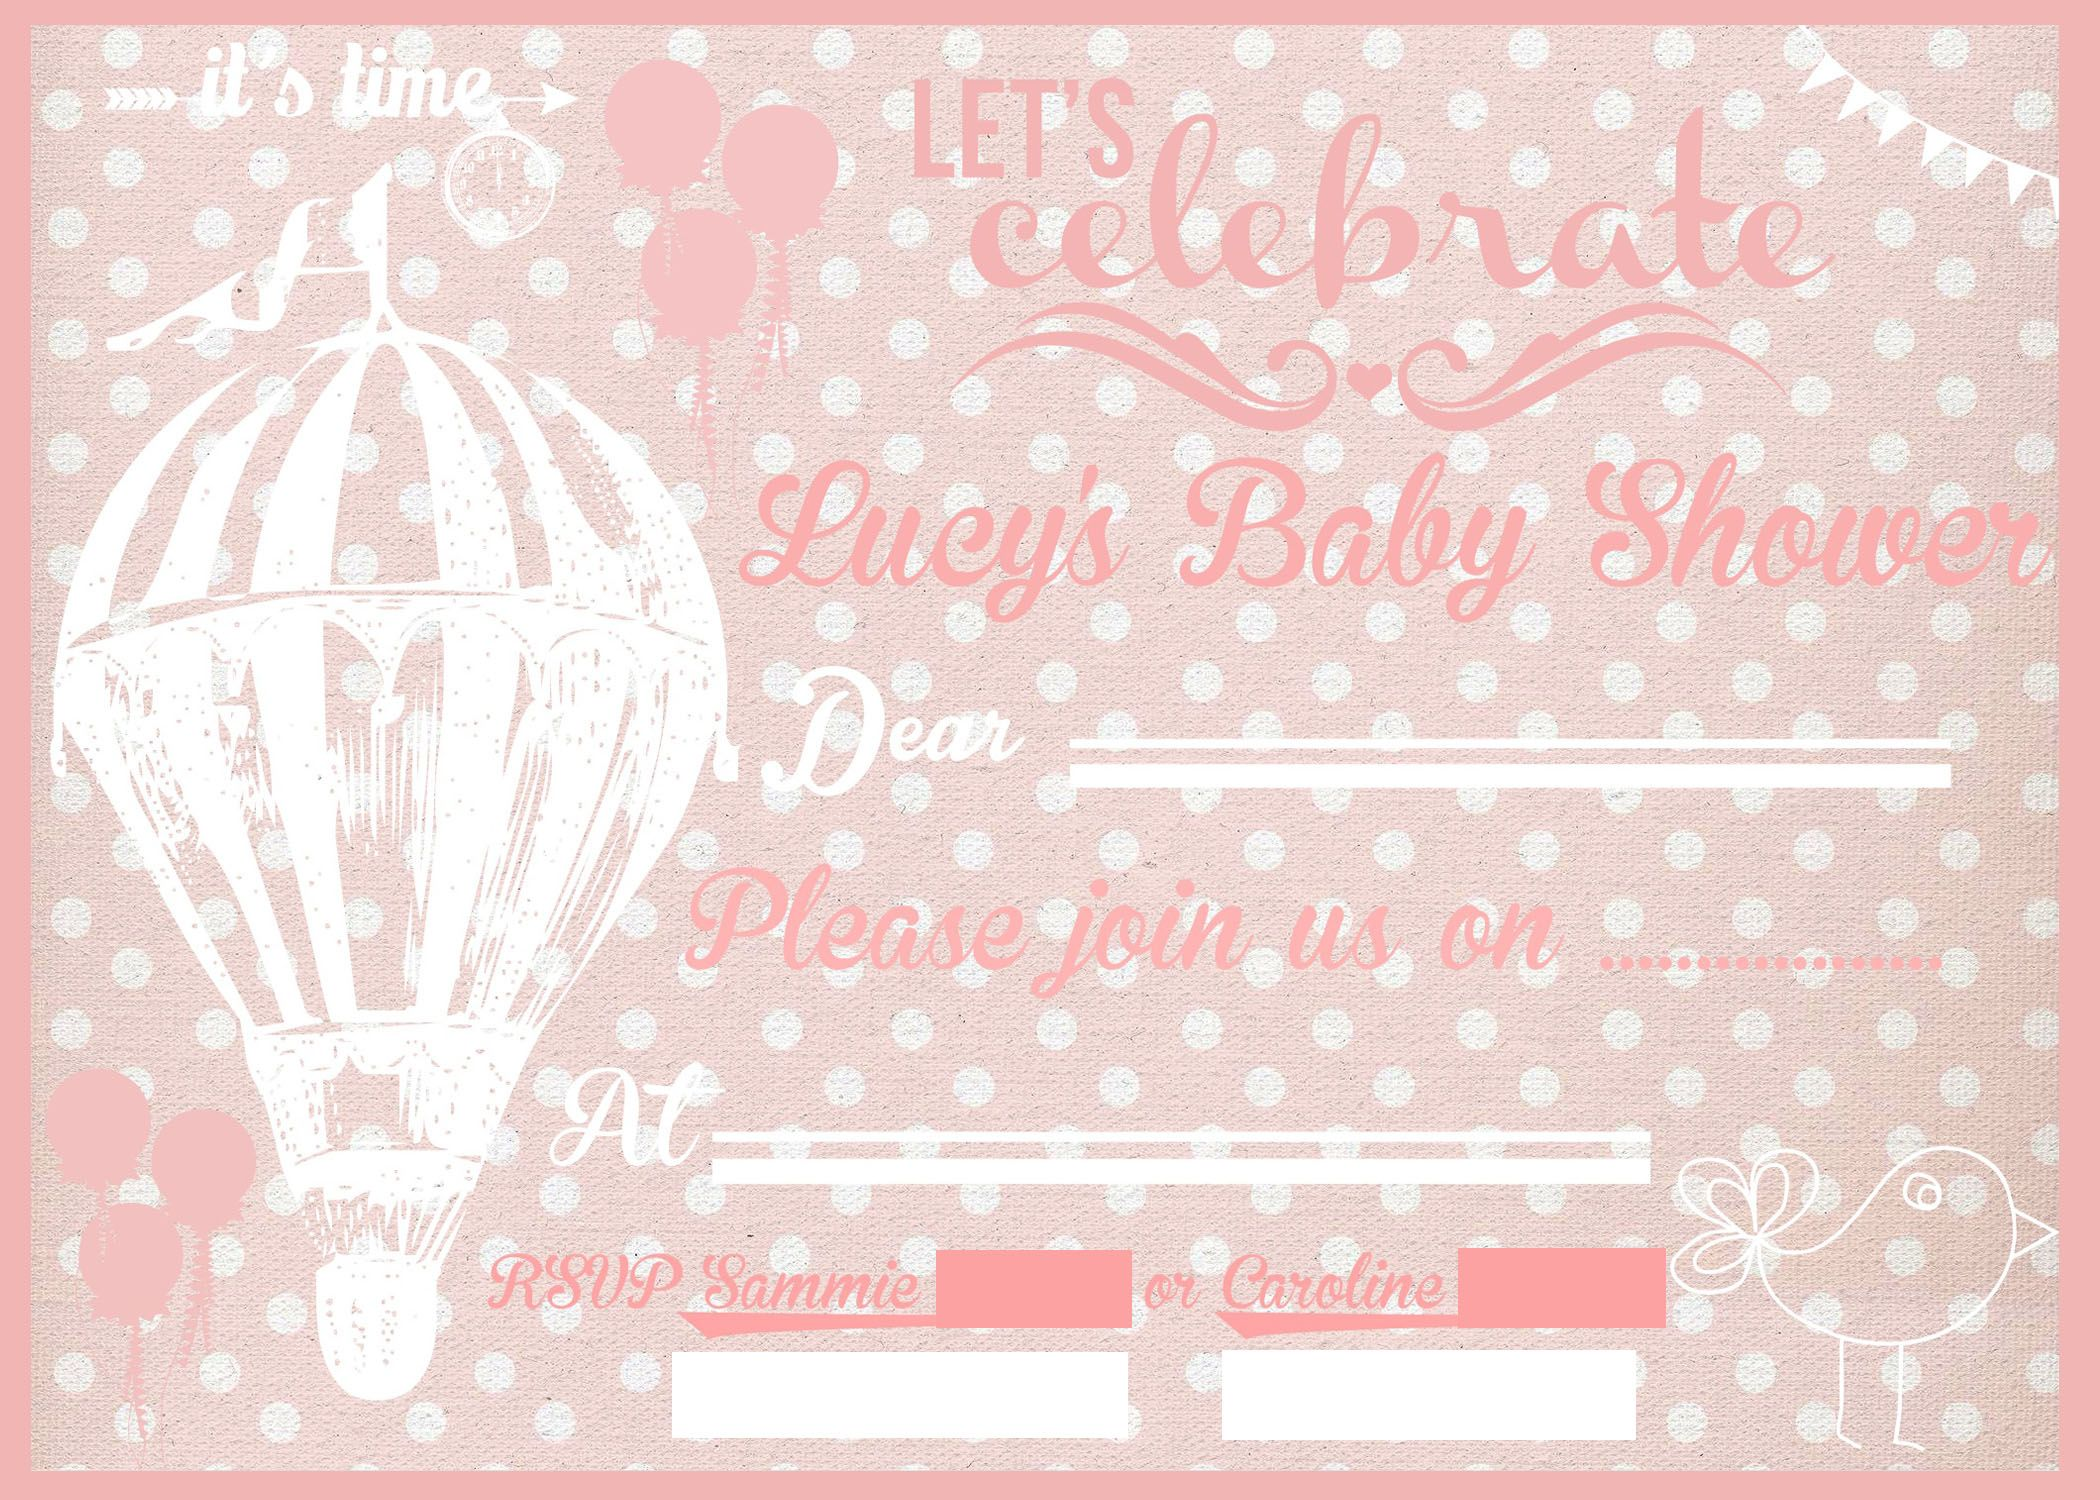 Baby Shower Invite for a GIRL Creaed using Rhonna app and shop